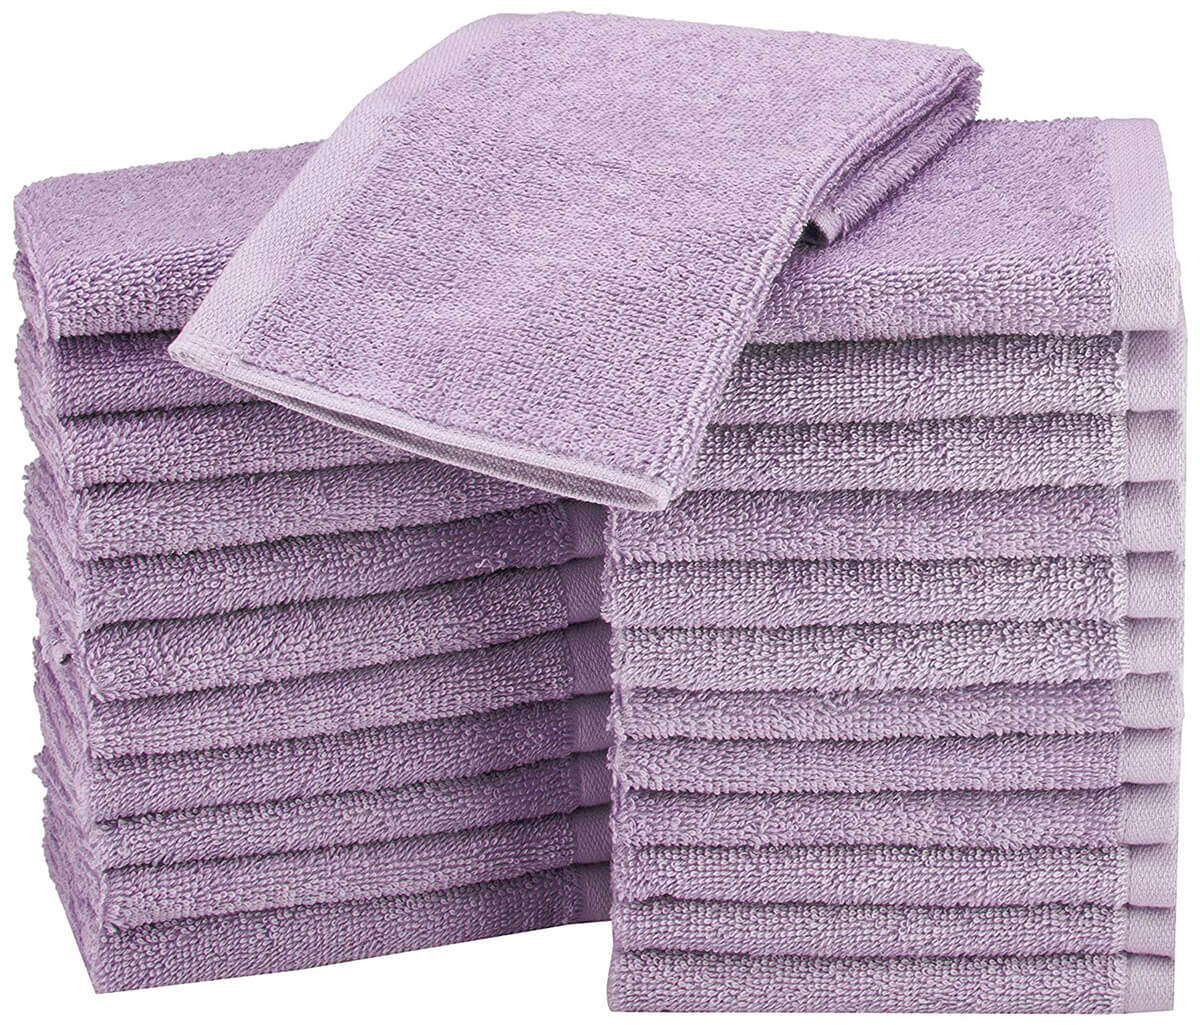 24 Pack of Washcloths by AmazonBasics